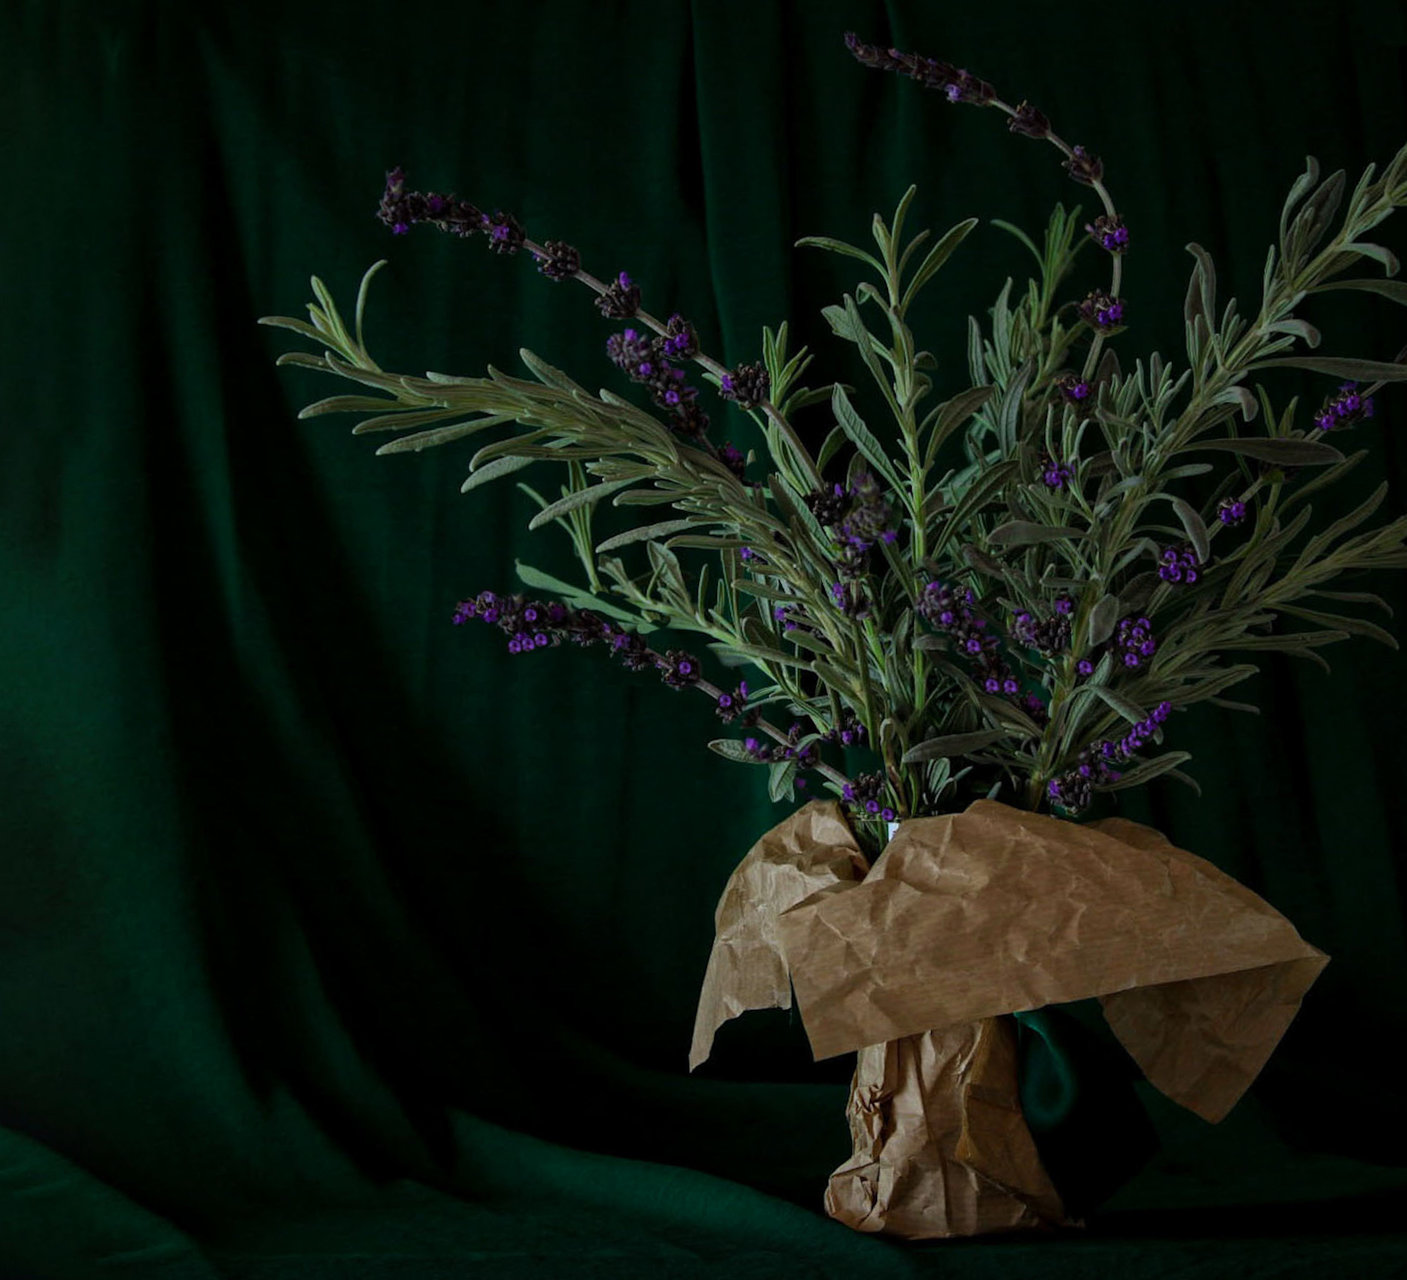 Lavender | Author Christiana Yonkova - christa_foodpoetry | PHOTO FORUM